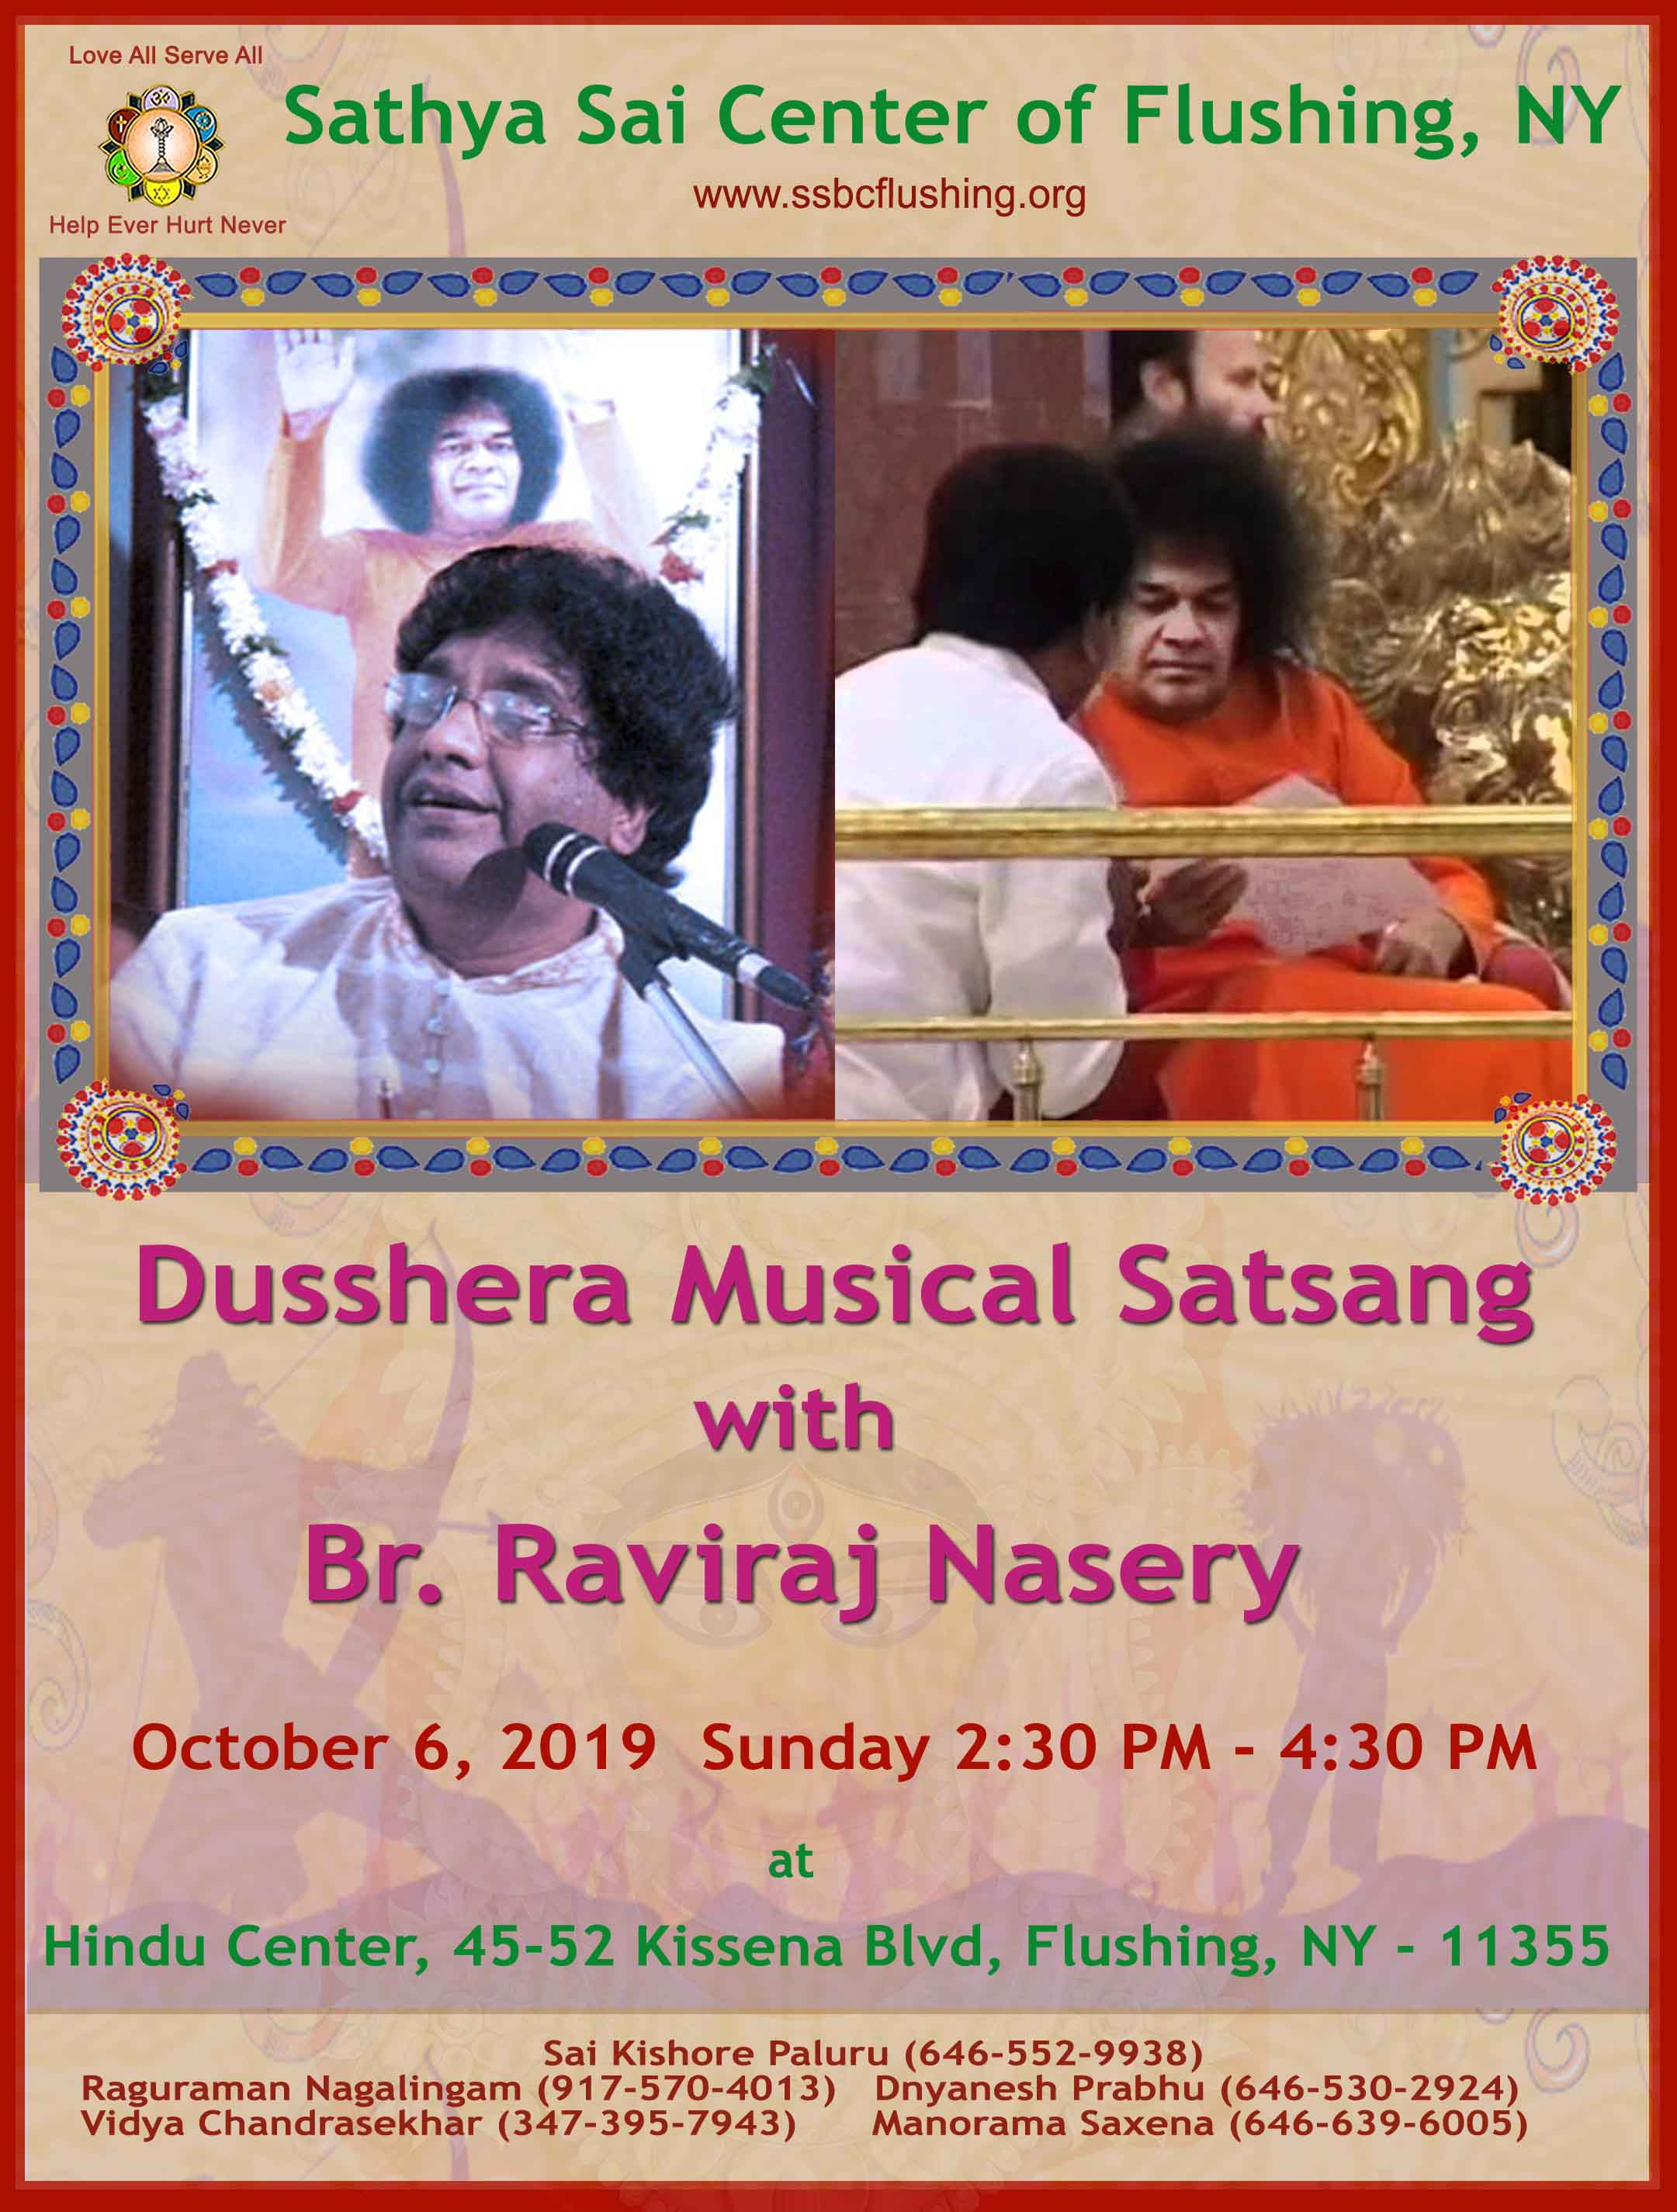 Saturday October 5th and Sunday October 6th 2019 Weekend Activities